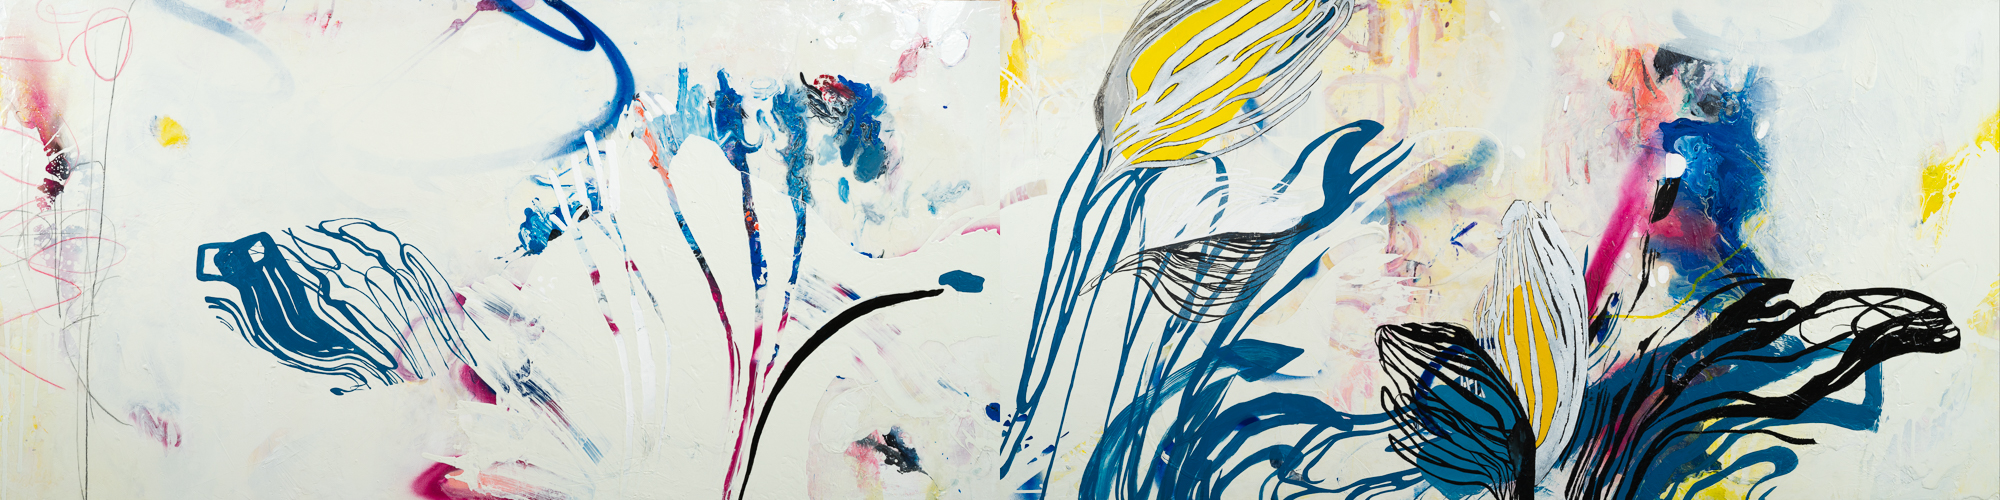 Laura Letchinger Los Angeles Artist Original Large Contemporary Abstract Art and Large Loft Paintings with Urban Expressionism and Street Graffiti Edge